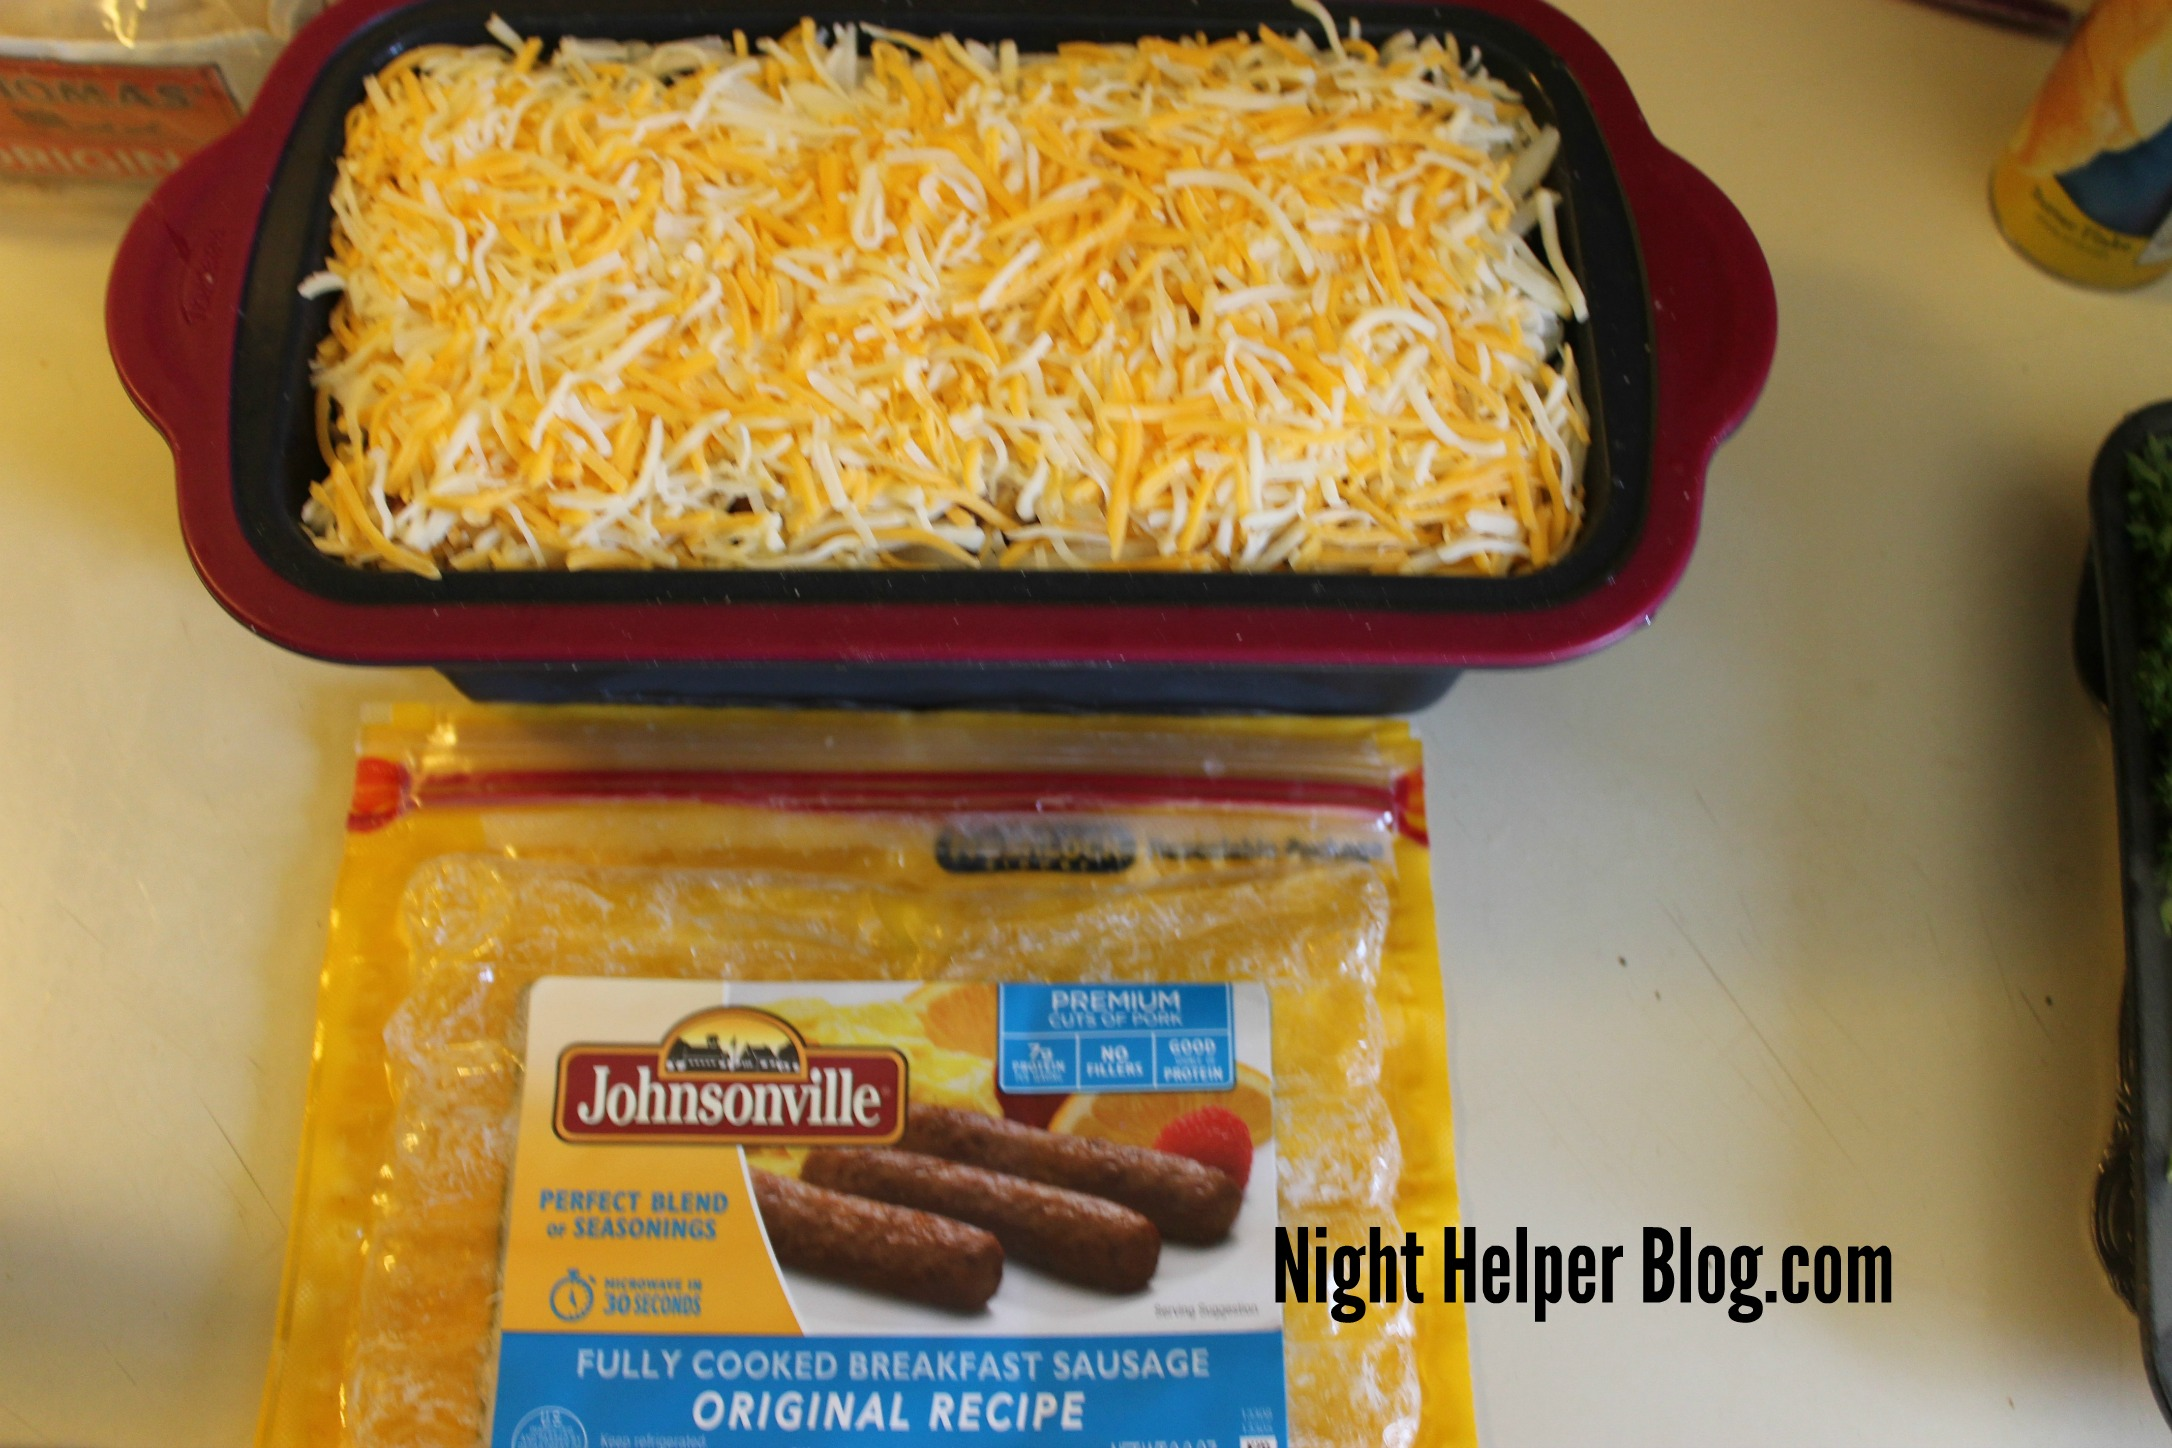 A Mother's Day Breakfast Meal from Johnsonville, she'll never forget the taste!